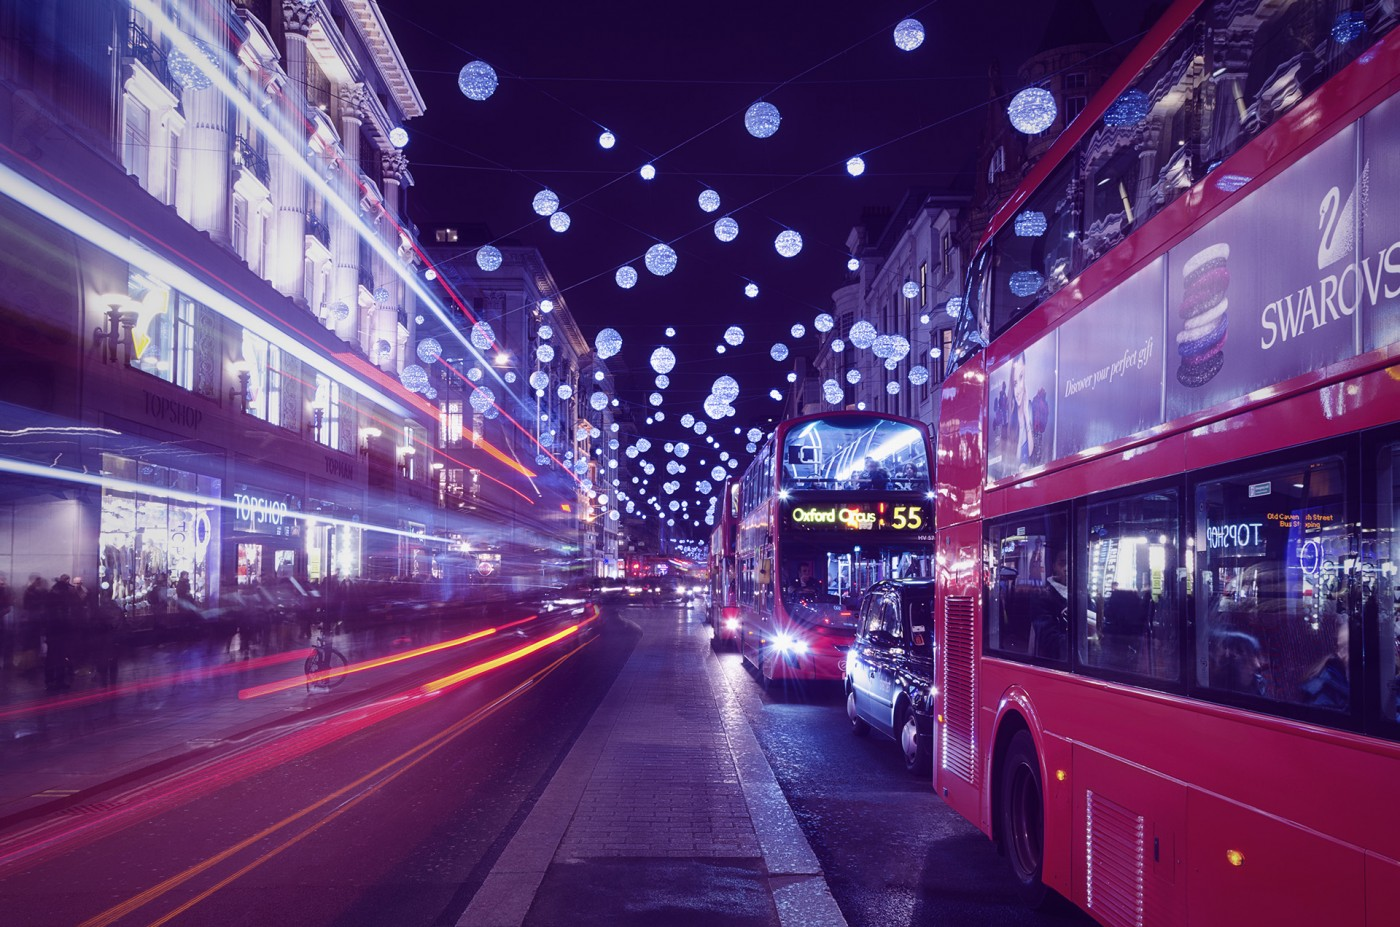 Christmas at Oxford Street